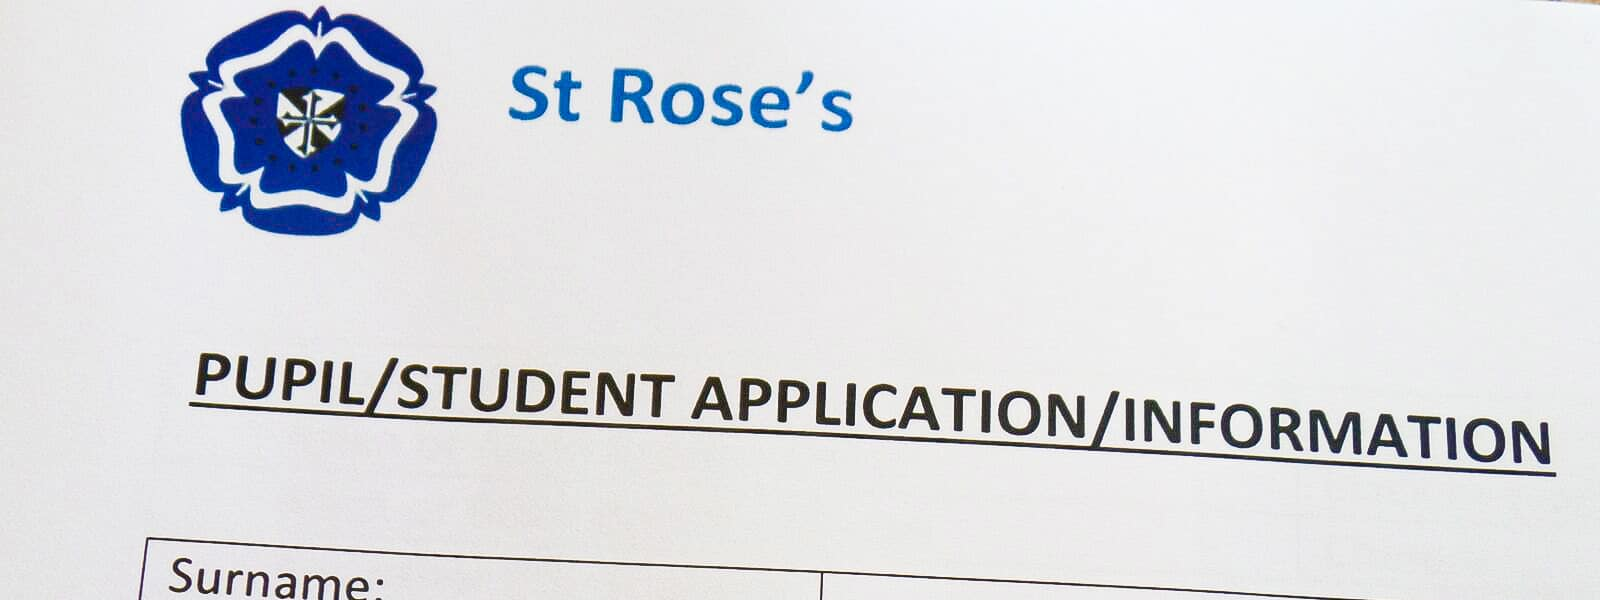 How to apply for st rose's